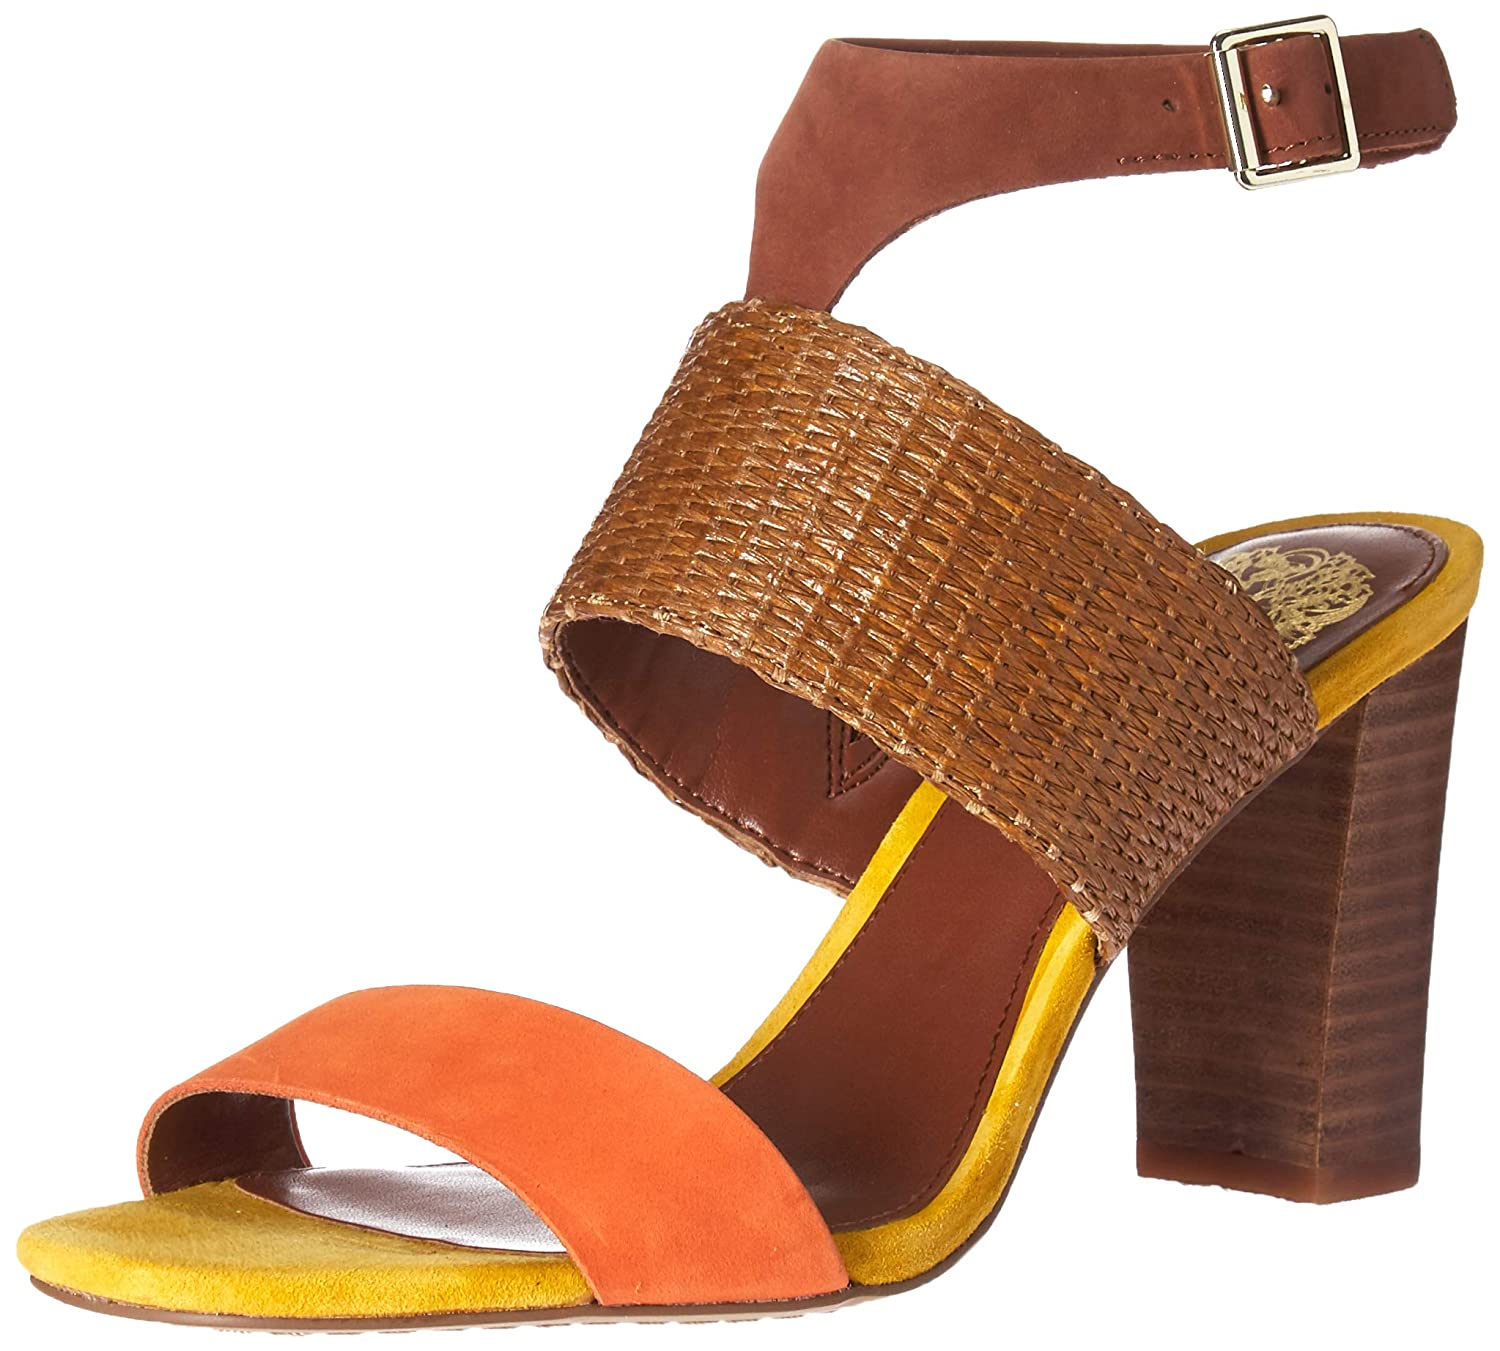 Mdbrown Vince Camuto Womens Warma Heeled Sandal